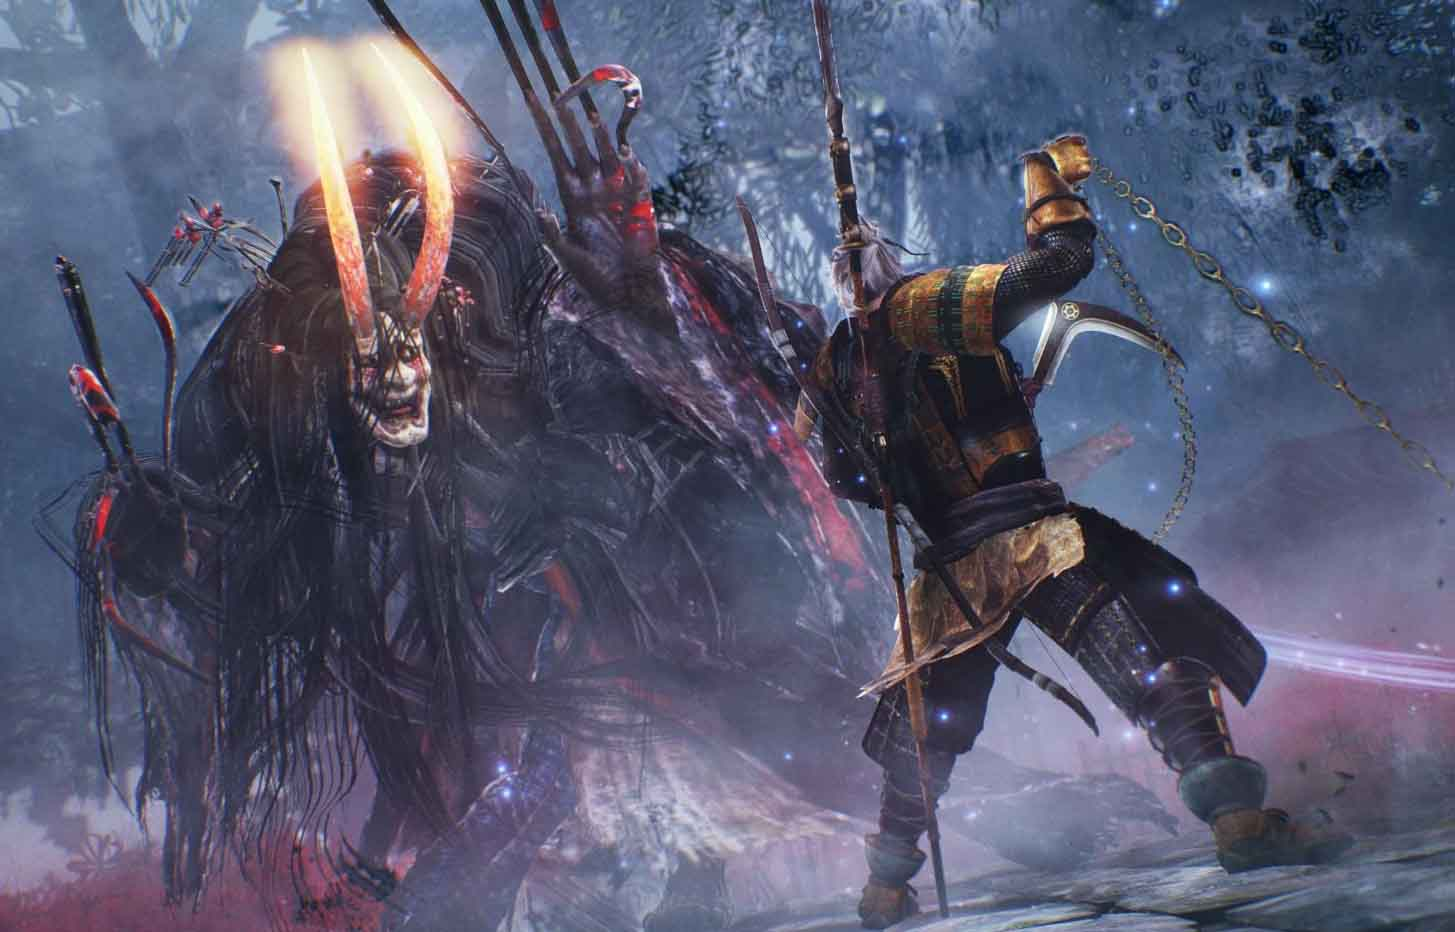 Fix Nioh 2 CE (The Complete Edition) Can't Change Resolution   Stuck at One Resolution